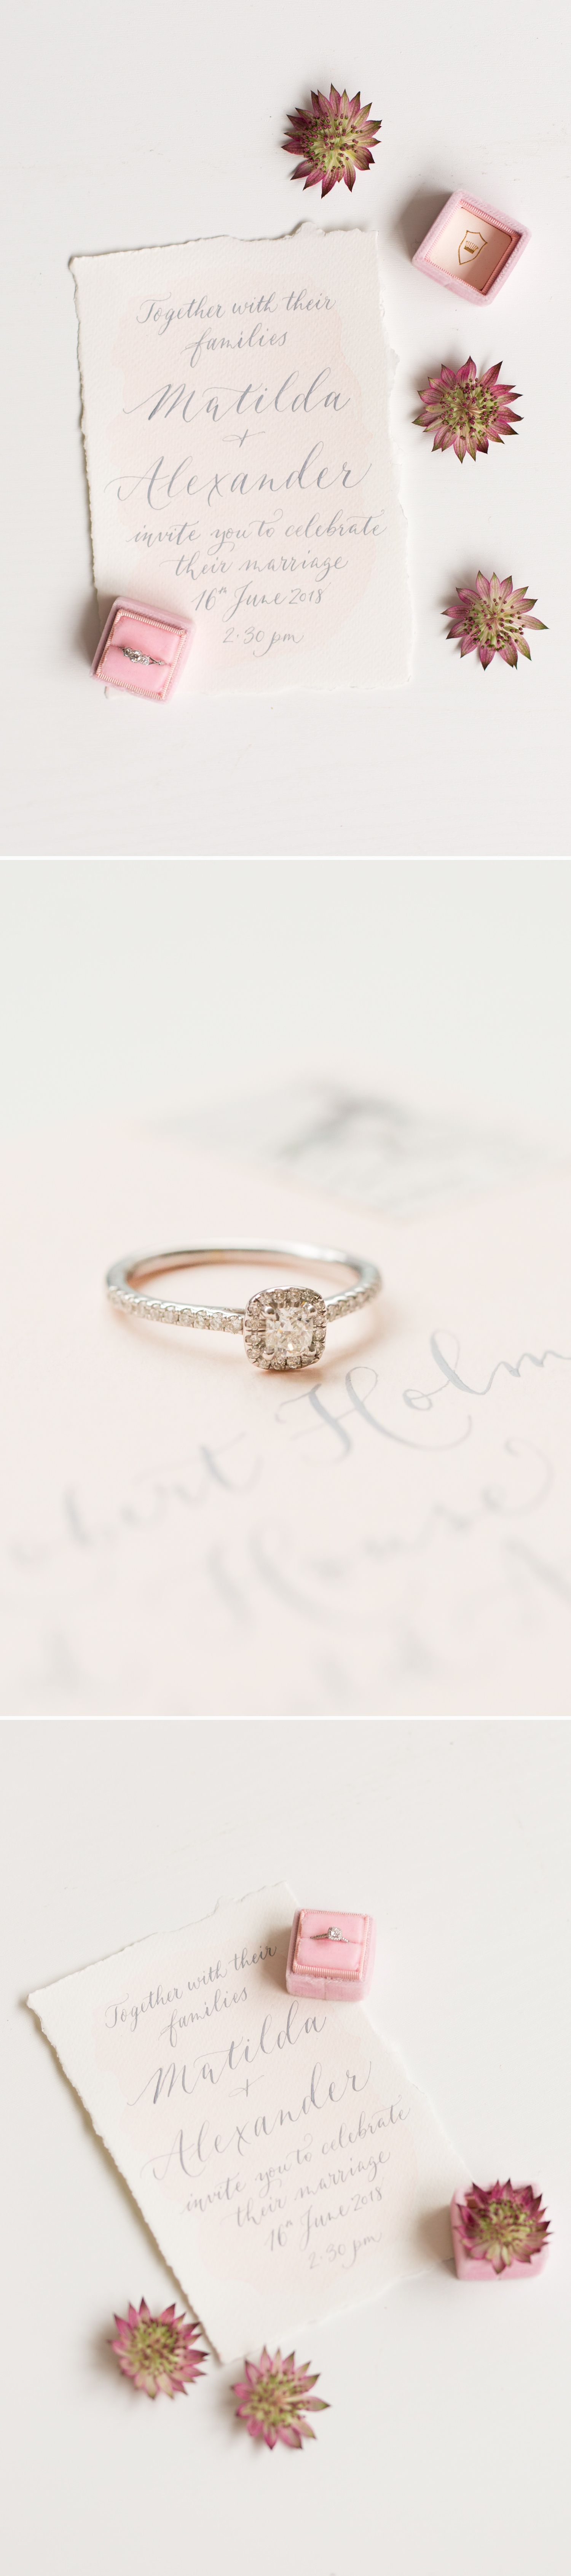 timeless engagement rings, diamond rings on calligraphy stationery